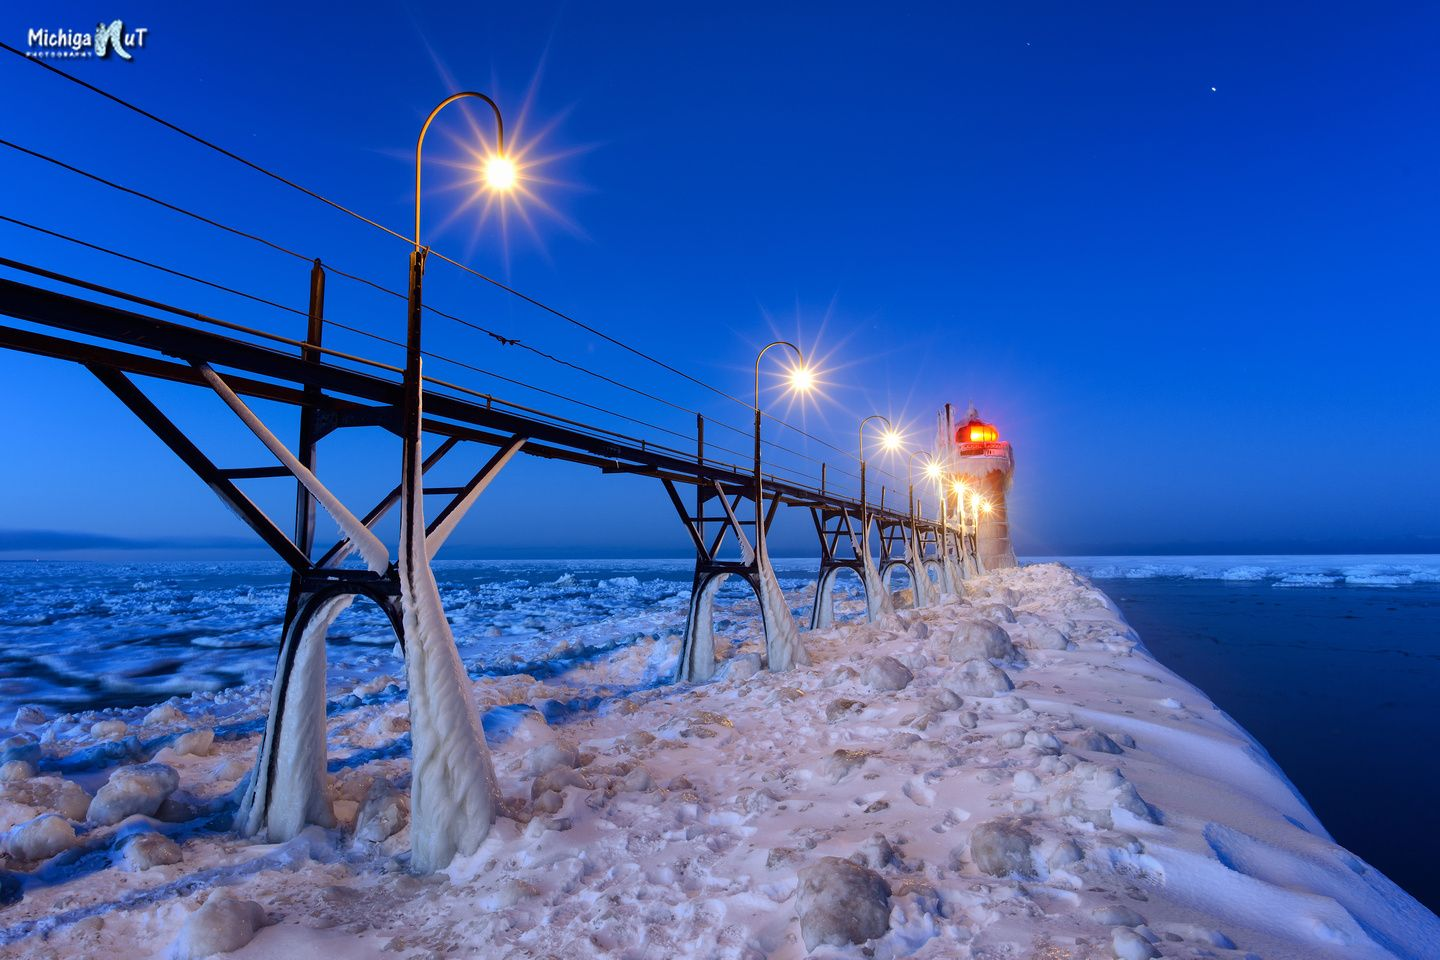 Predawn at South Haven Lighthouse